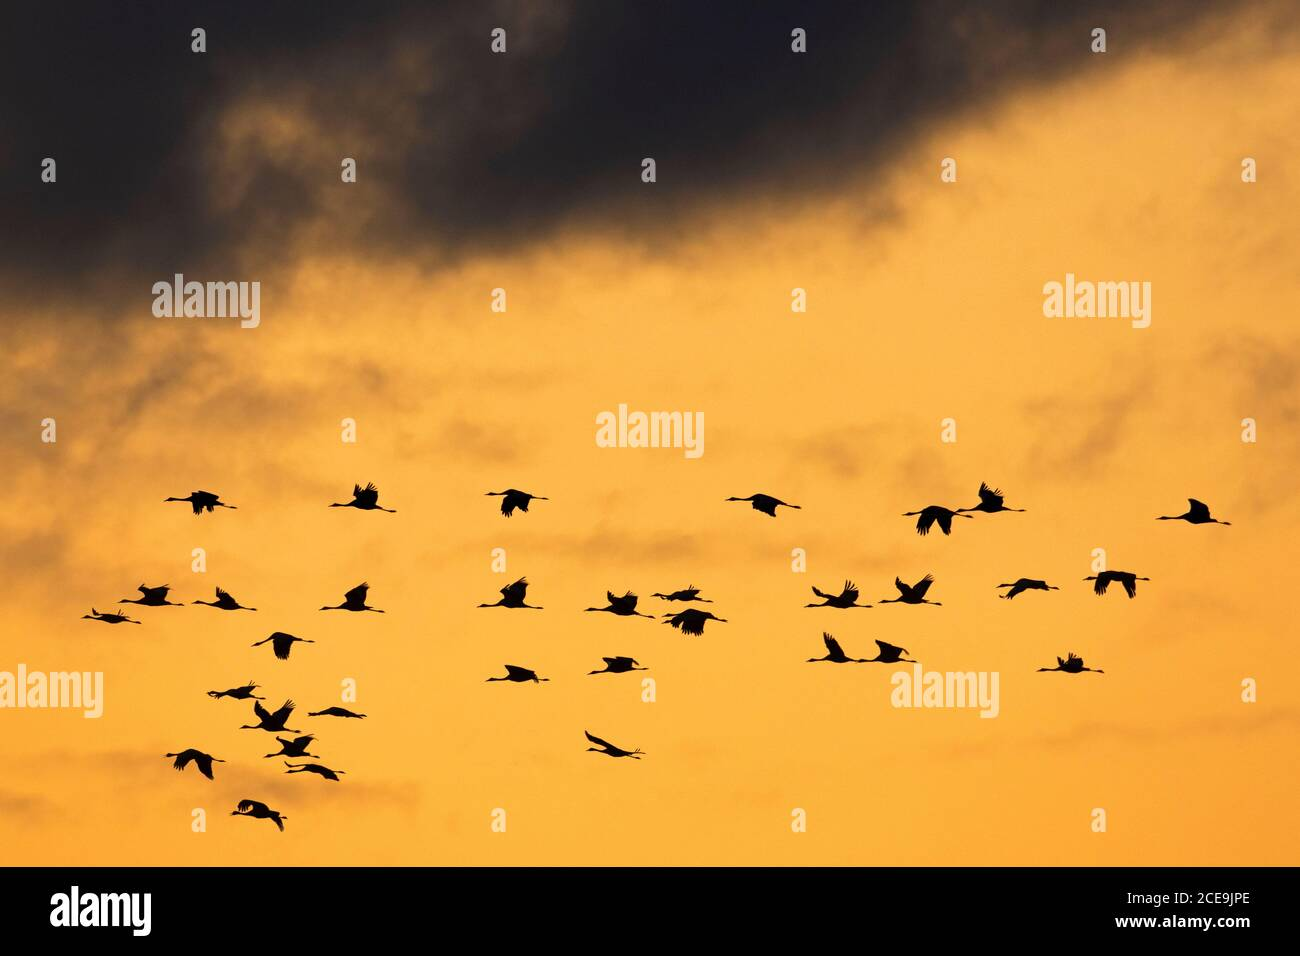 Migrating flock of common cranes / Eurasian crane (Grus grus) flying at sunset during migration, silhouetted against orange sky Stock Photo